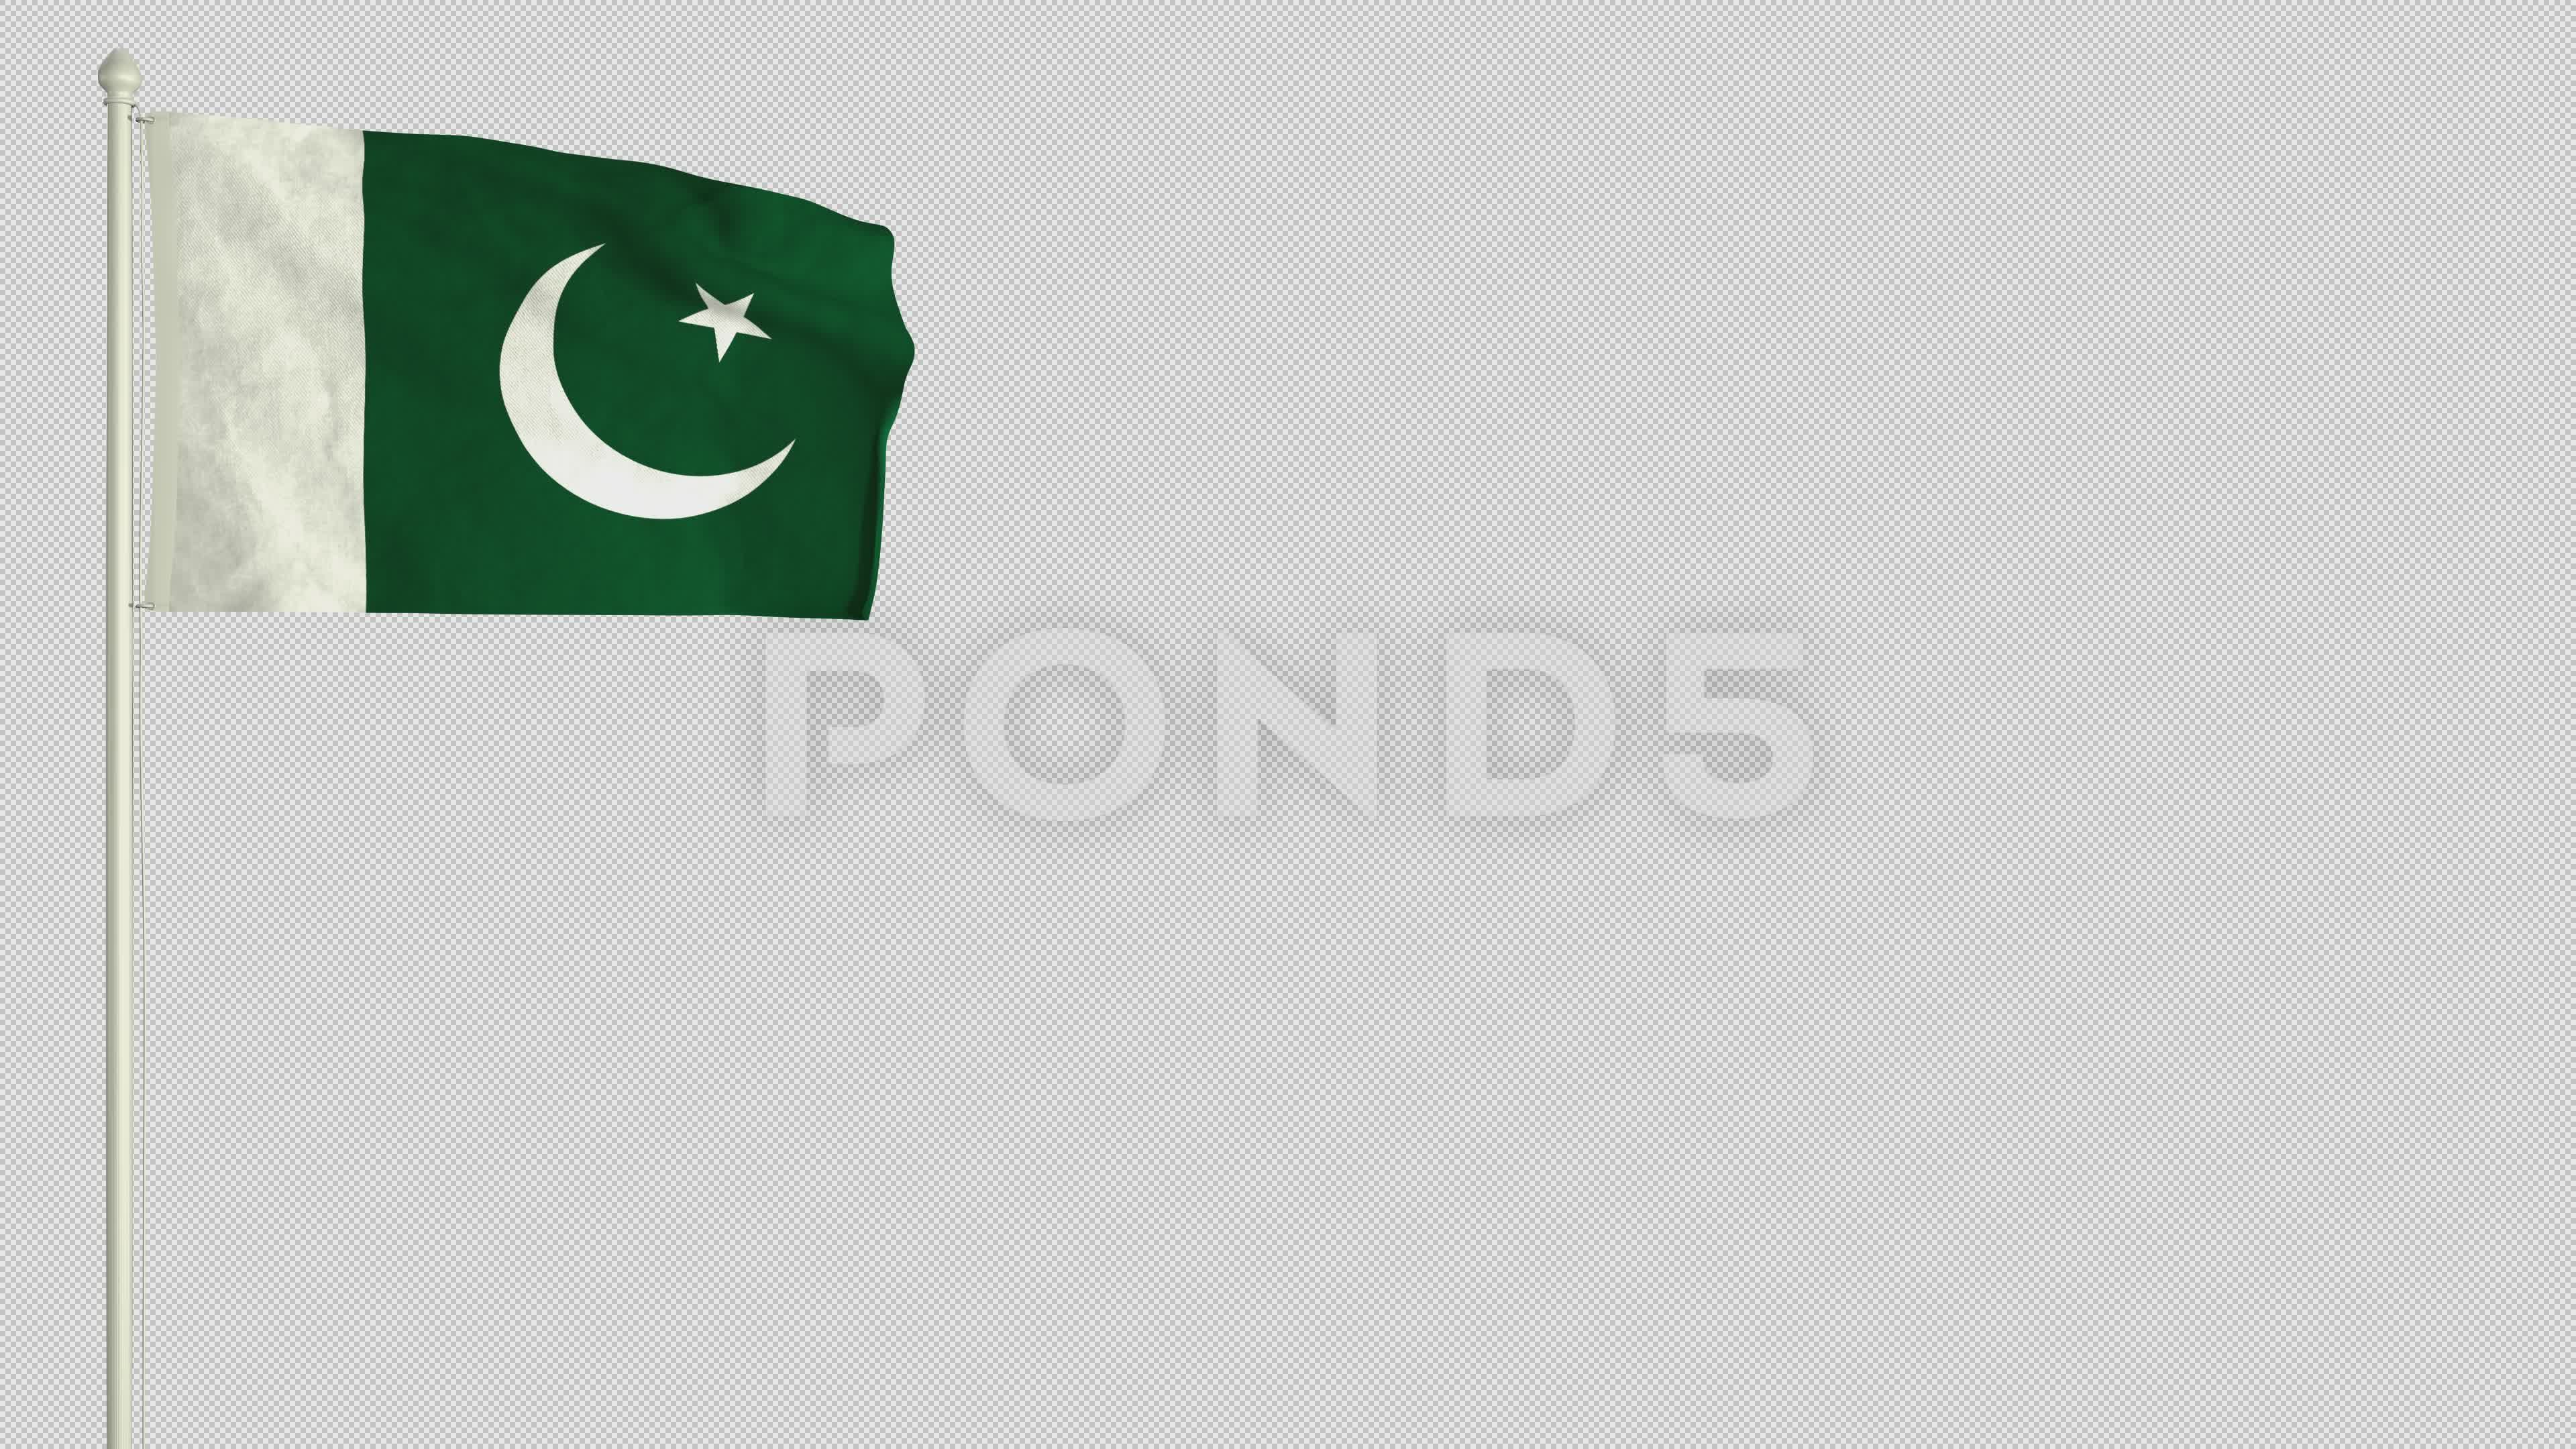 Pakistani Flag Waving In The Wind With Png Alpha Channel Stock Footage Waving Wind Pakistani Flag Pakistani Flag Alpha Channel Portfolio Templates